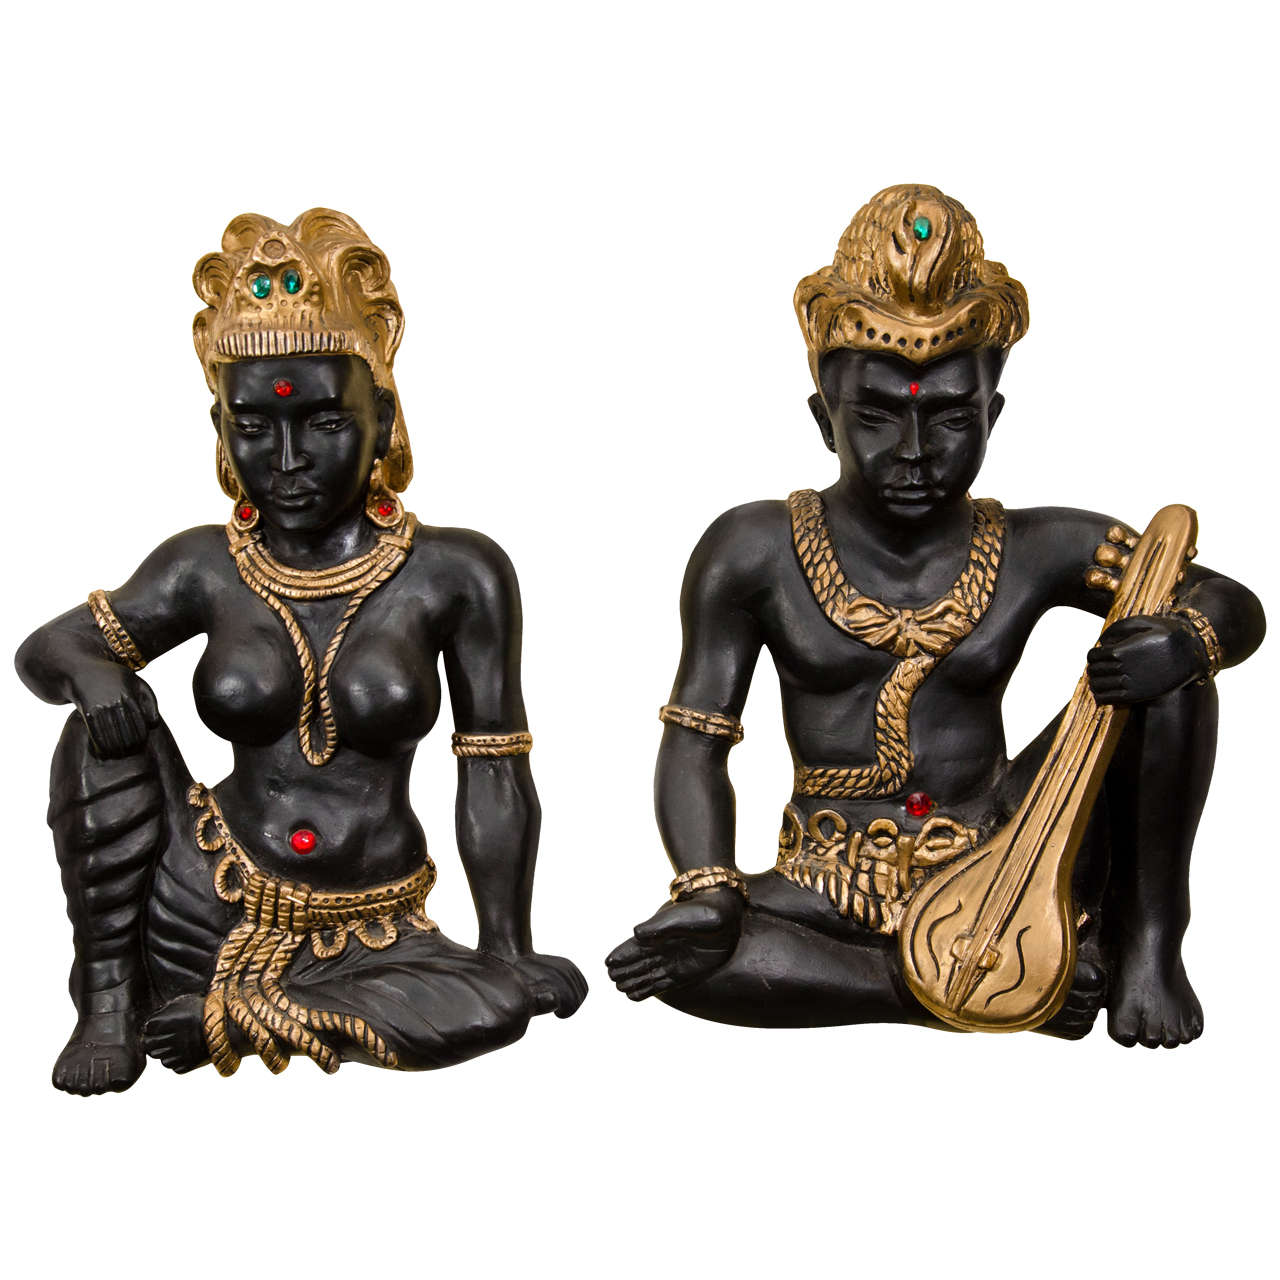 Pair of Exotic Figurines Wall Sculpture 1